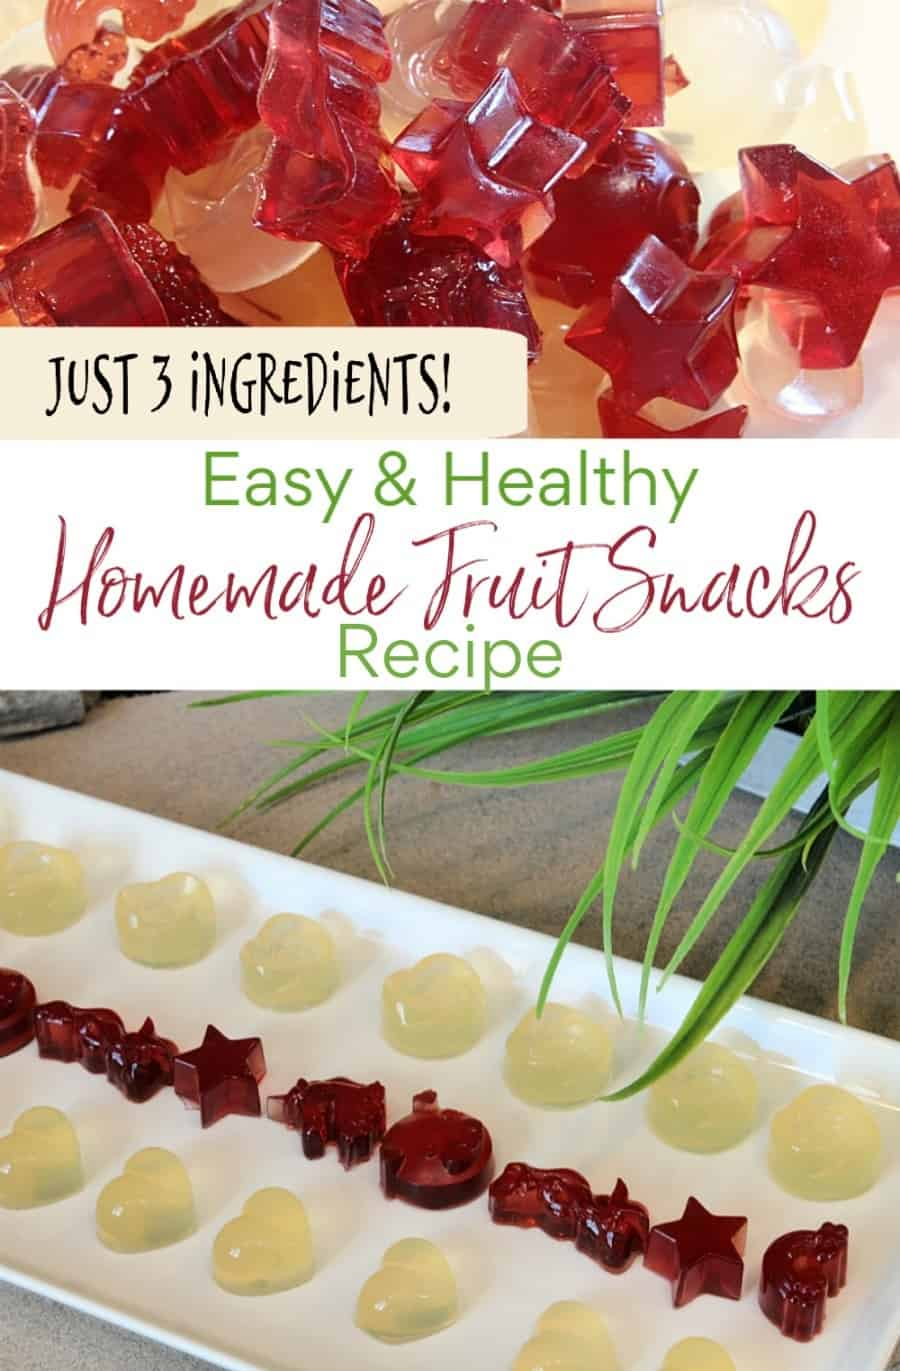 Easy & Healthy Homemade Fruit Snacks Recipe + Why You Need To Try Zahler's New Gummies